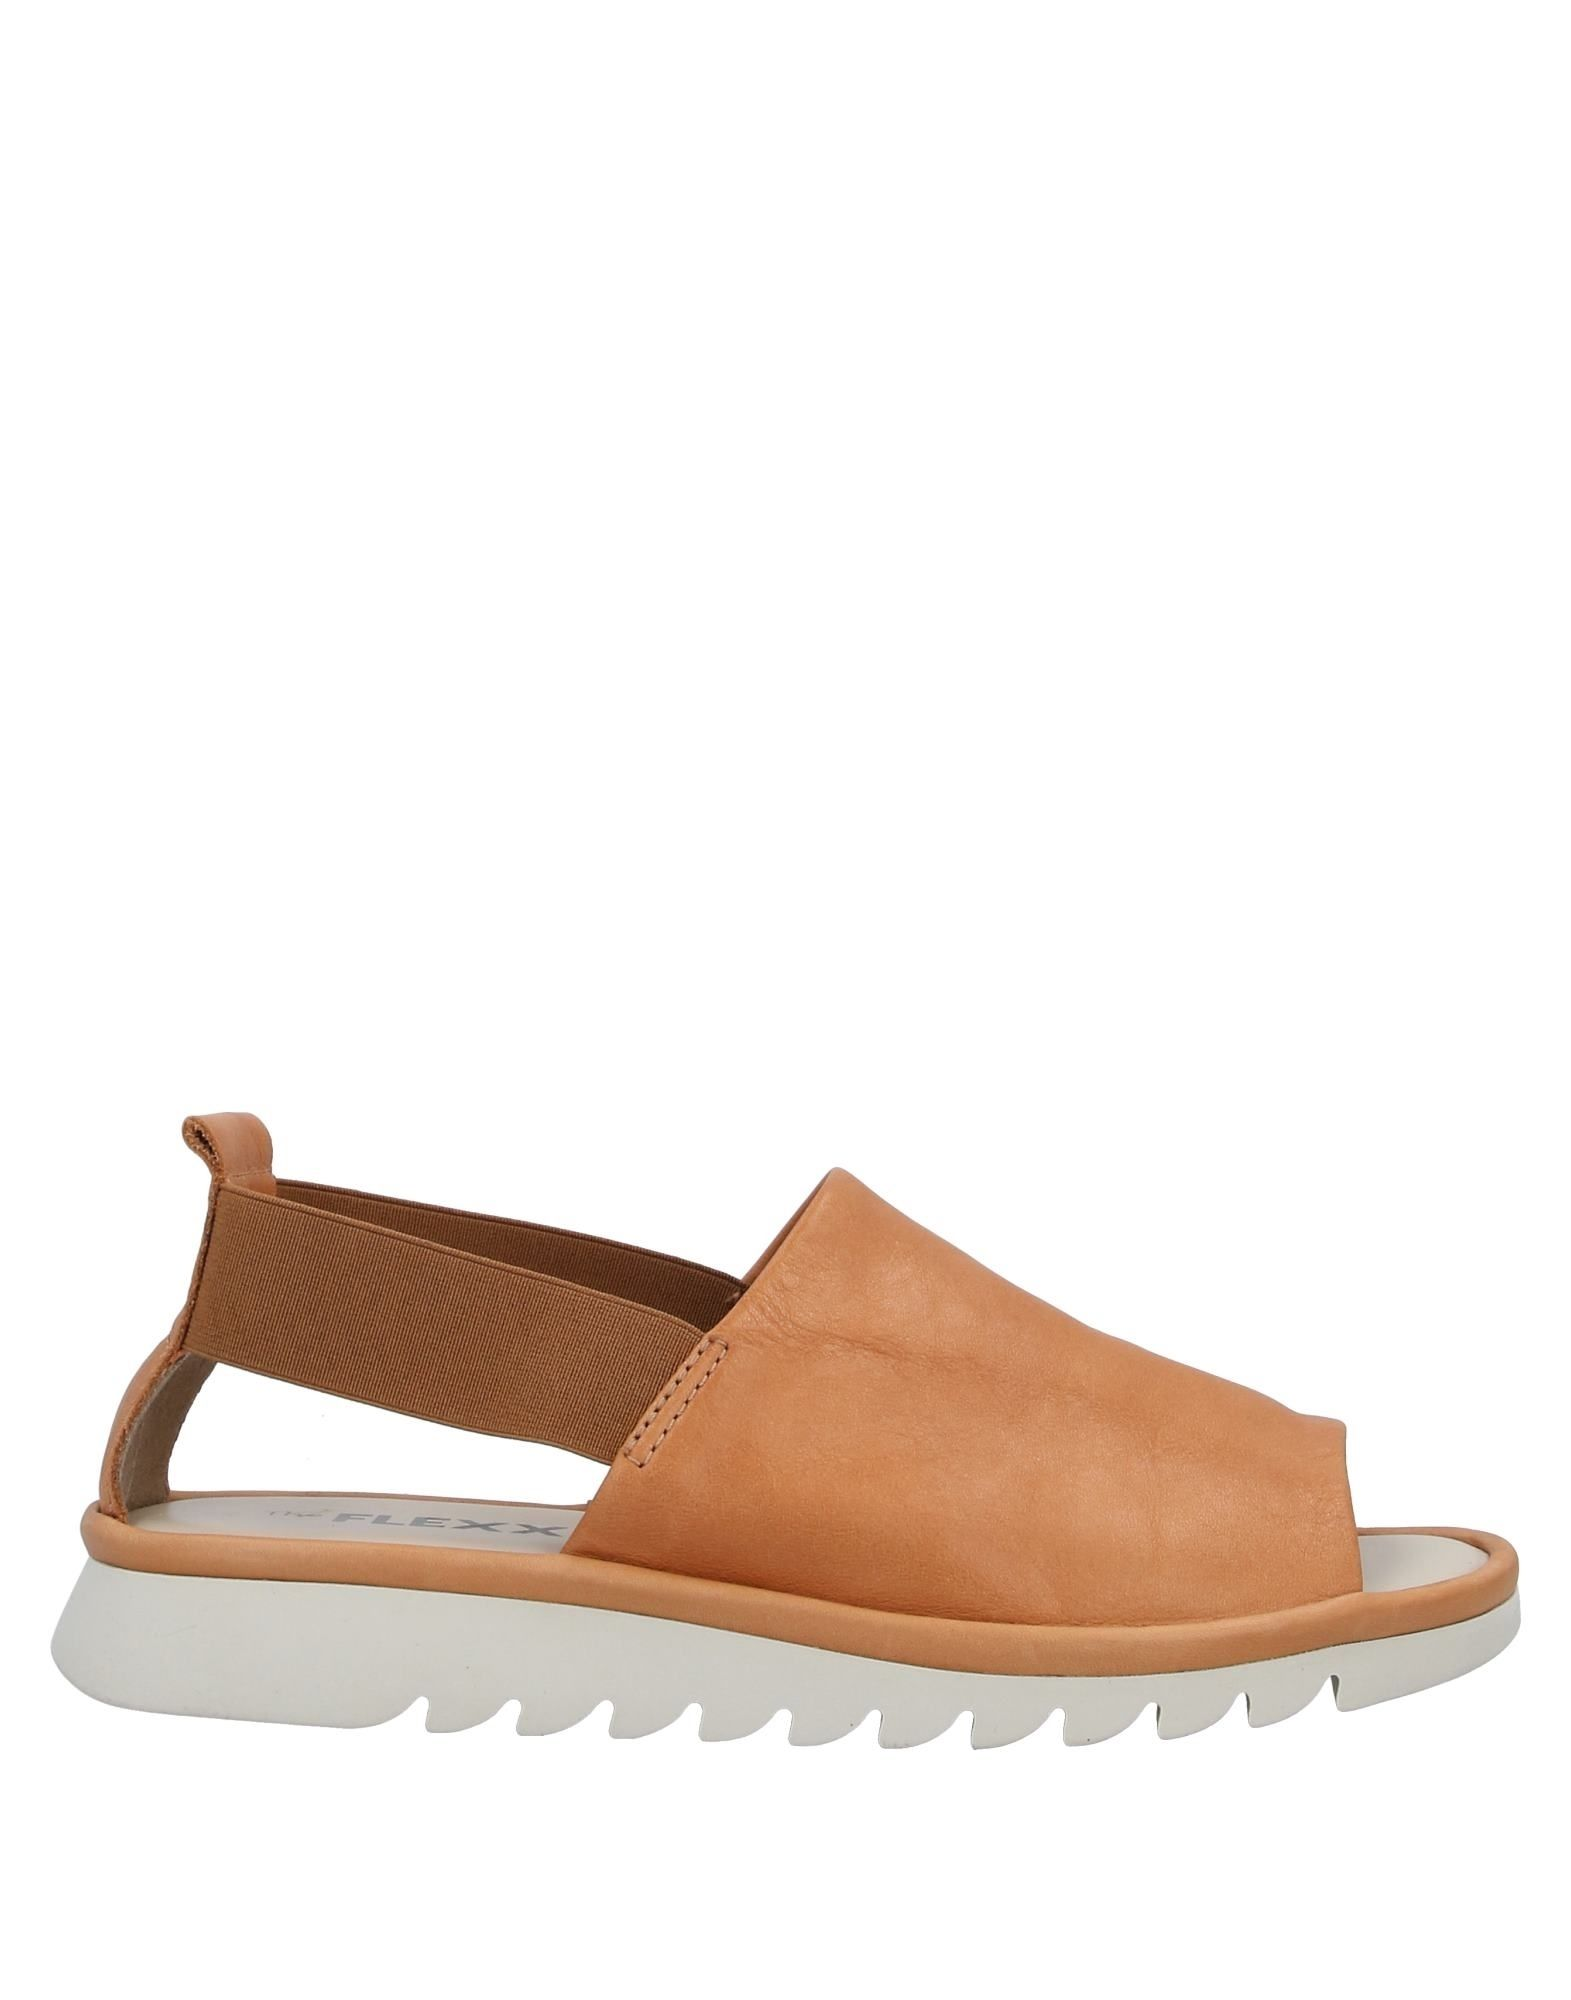 THE FLEXX Sandals. no appliqués, solid color, elasticized gores, round toeline, flat, leather lining, rubber cleated sole, contains non-textile parts of animal origin. Soft Leather